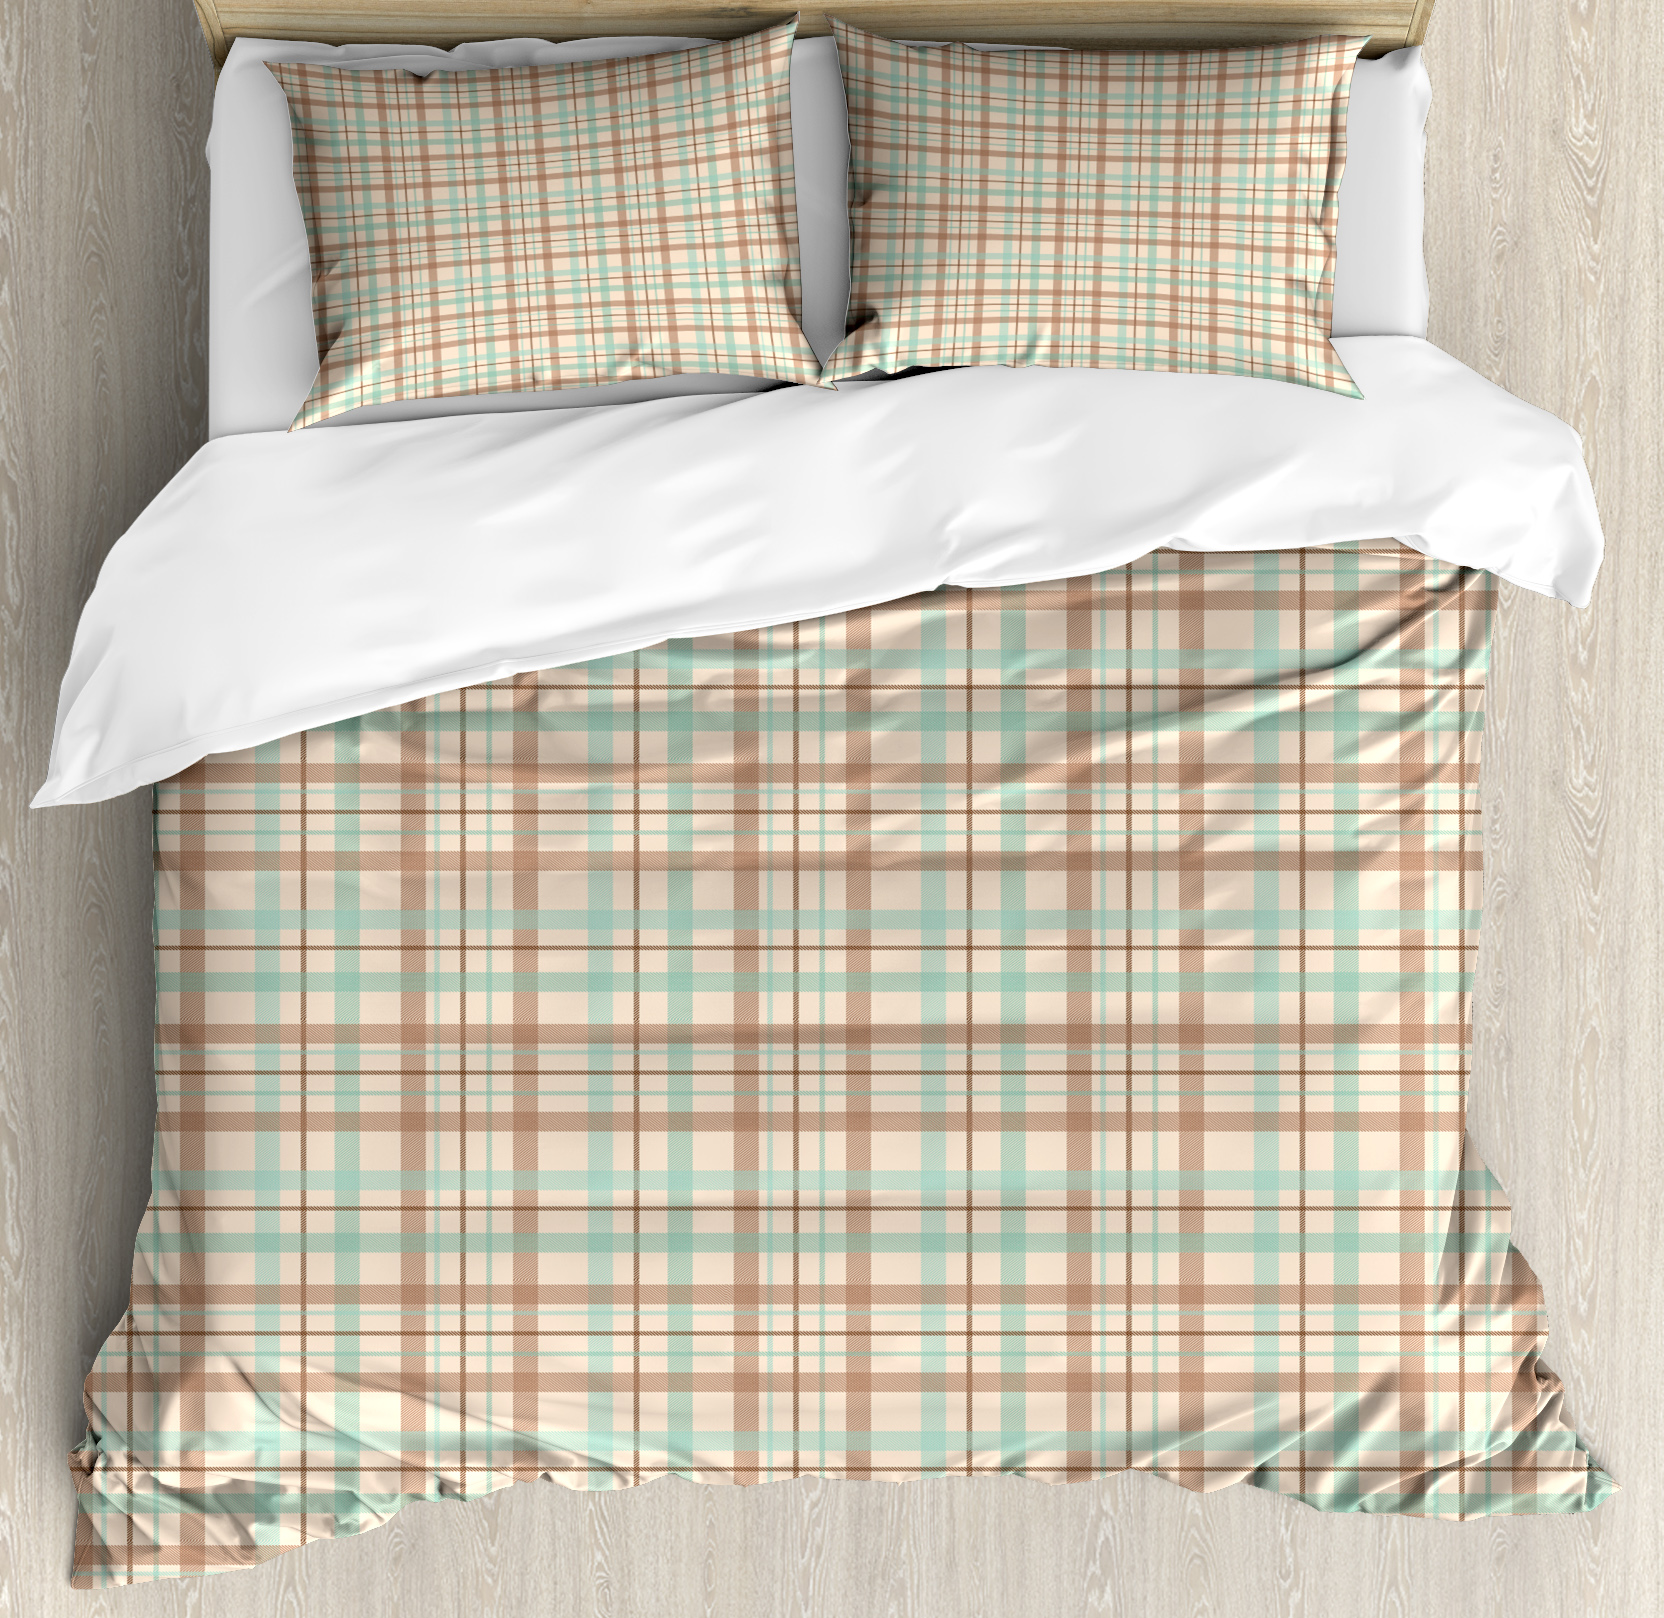 Plaid King Size Duvet Cover Set Scottish Country Style